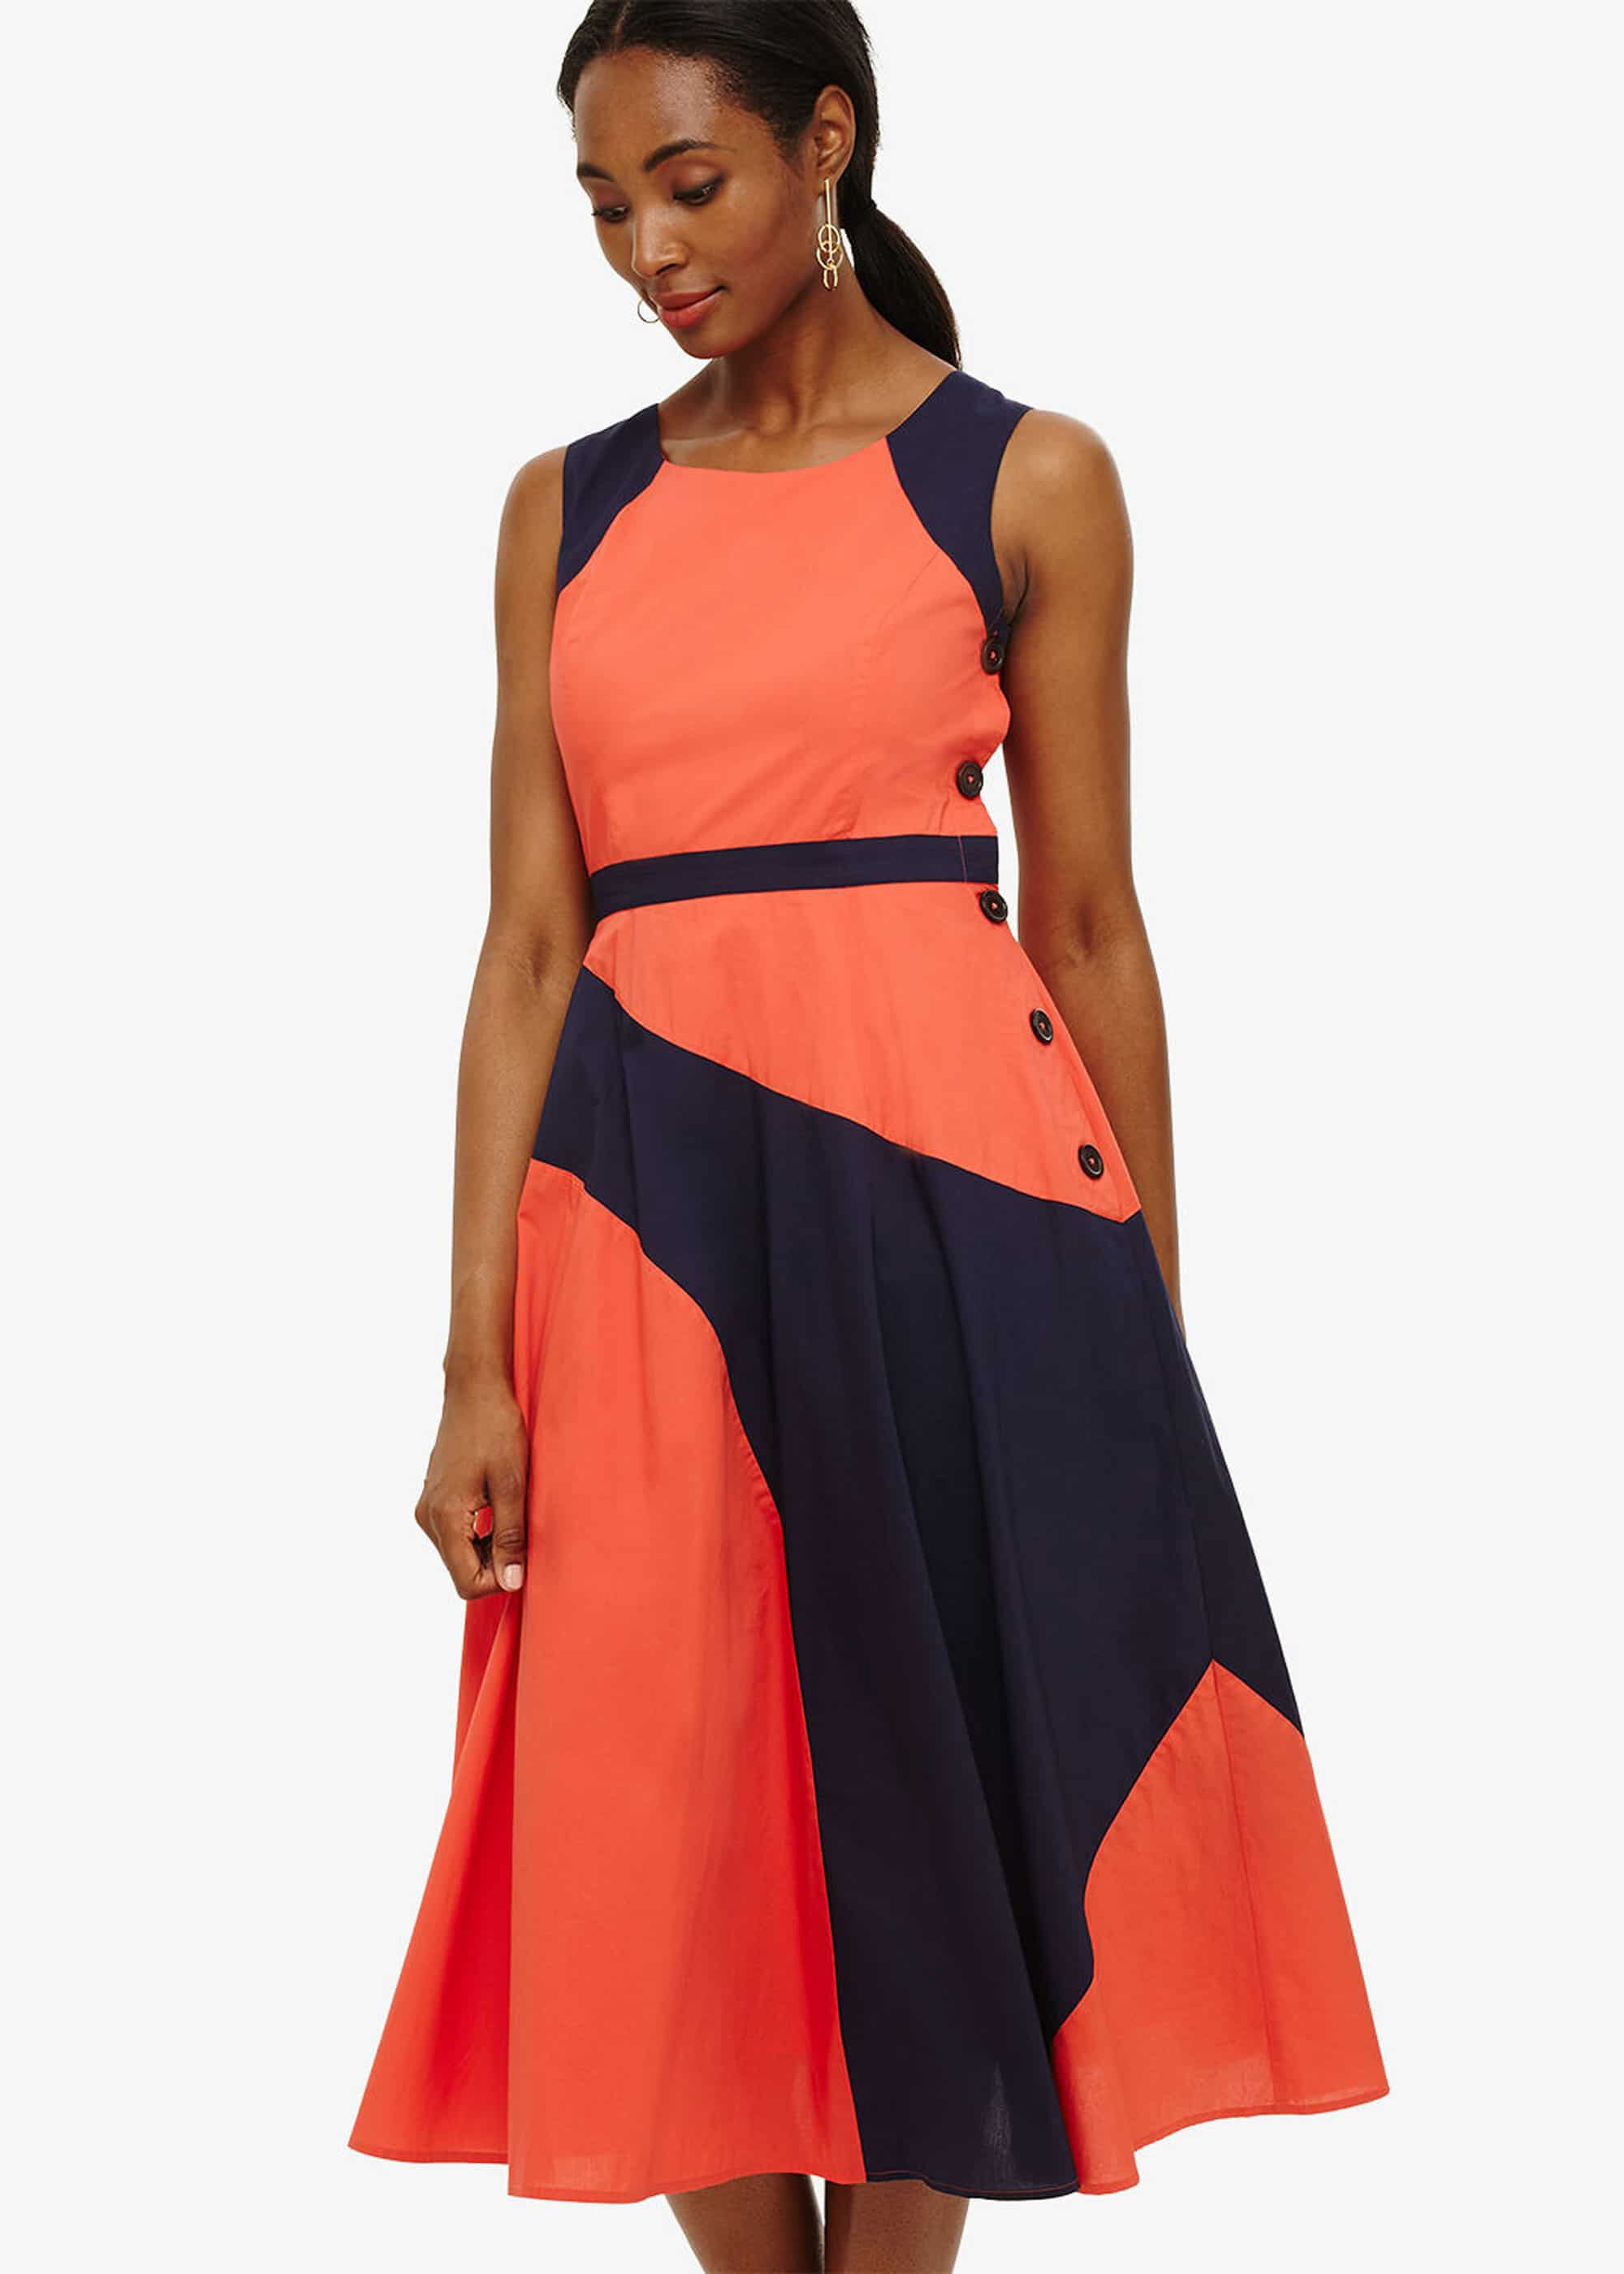 Phase Eight Chelle Colour Block Dress, Orange, Fit & Flare